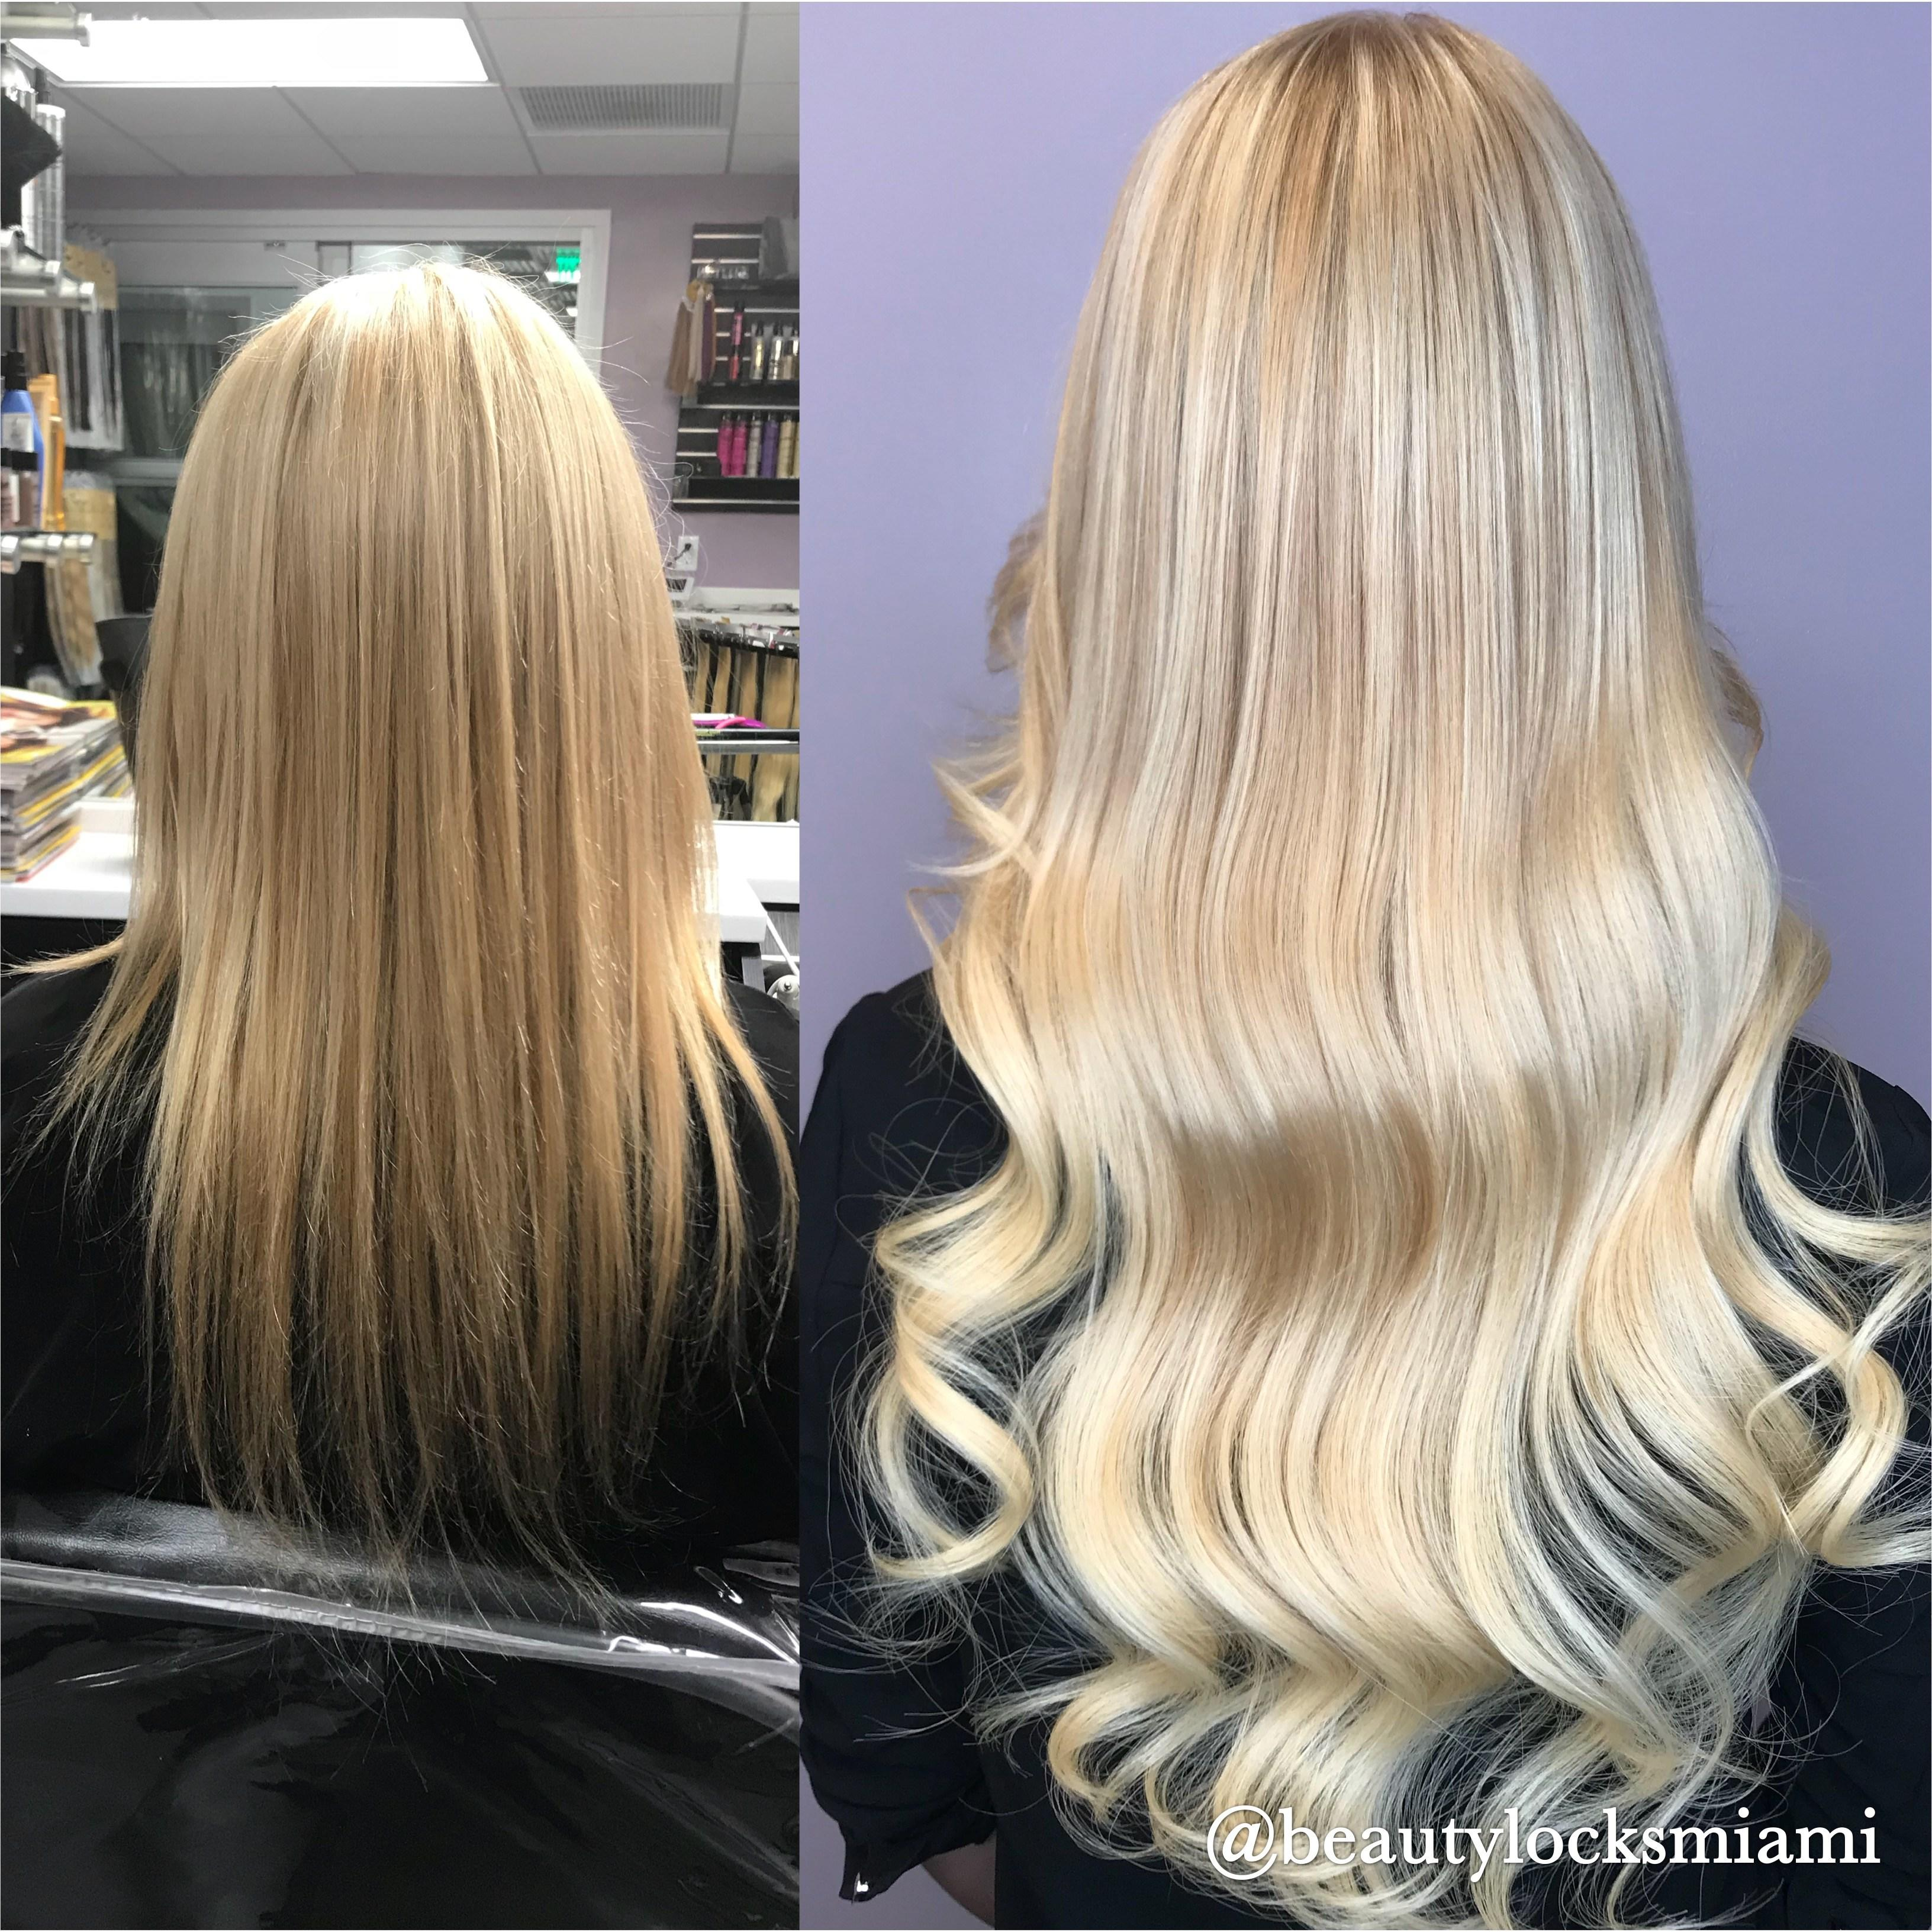 The Best Hair Extensions Best Hair Extensions Salon Natural Pictures